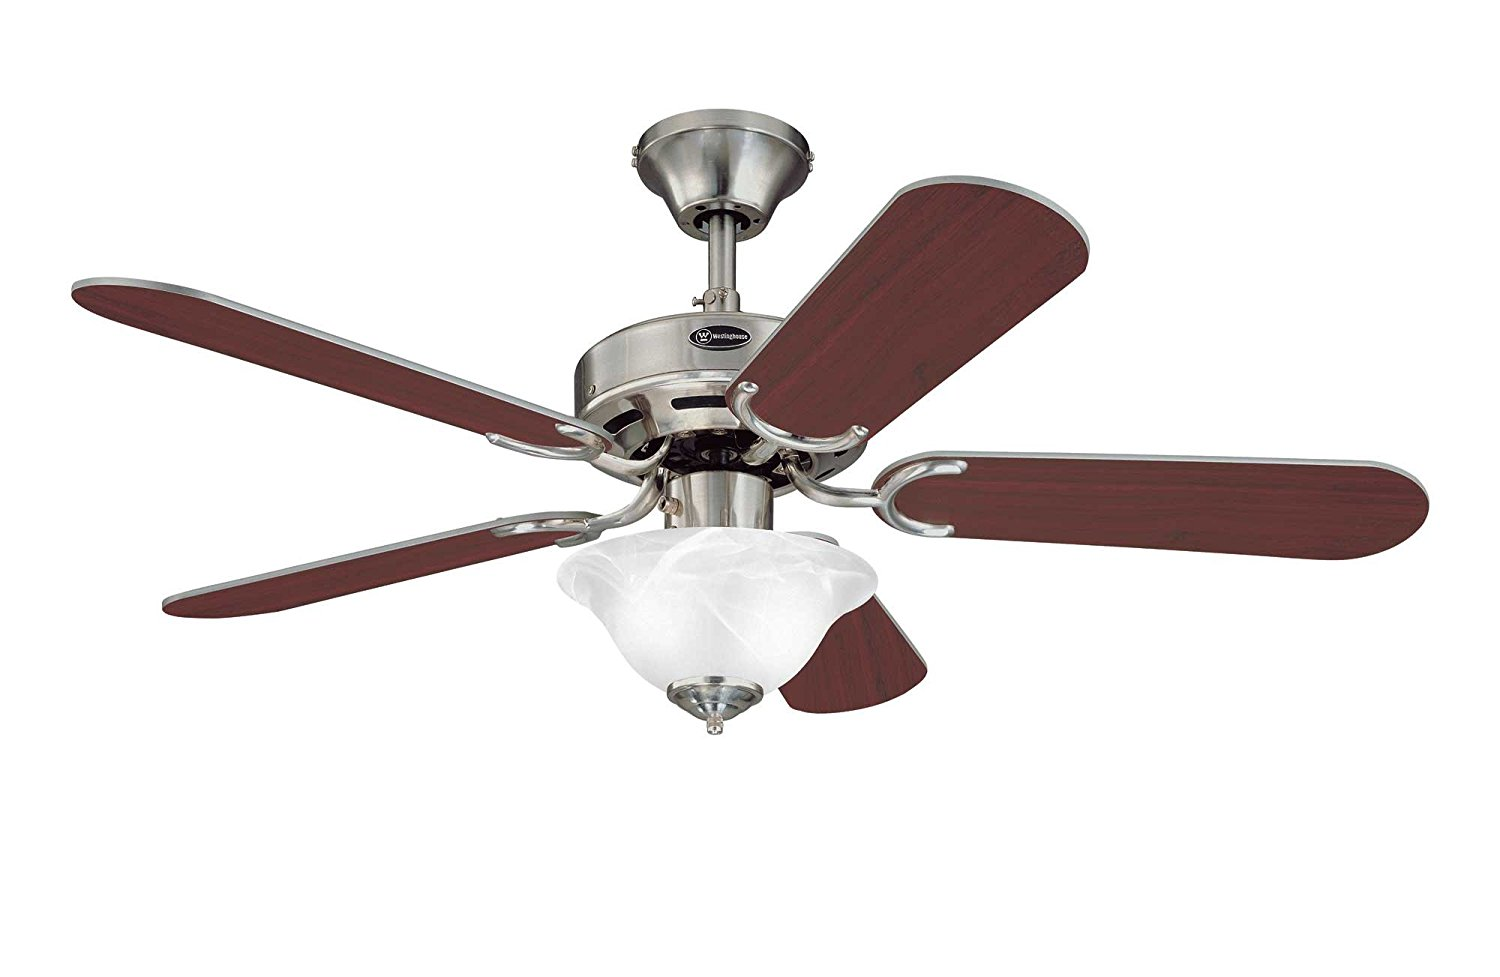 Westinghouse 7877365 Richboro SE Two-Light 42-Inch Reversible Five-Blade Indoor Ceiling Fan, Brushed Nickel with Frosted White Alabaster Glass Bowl